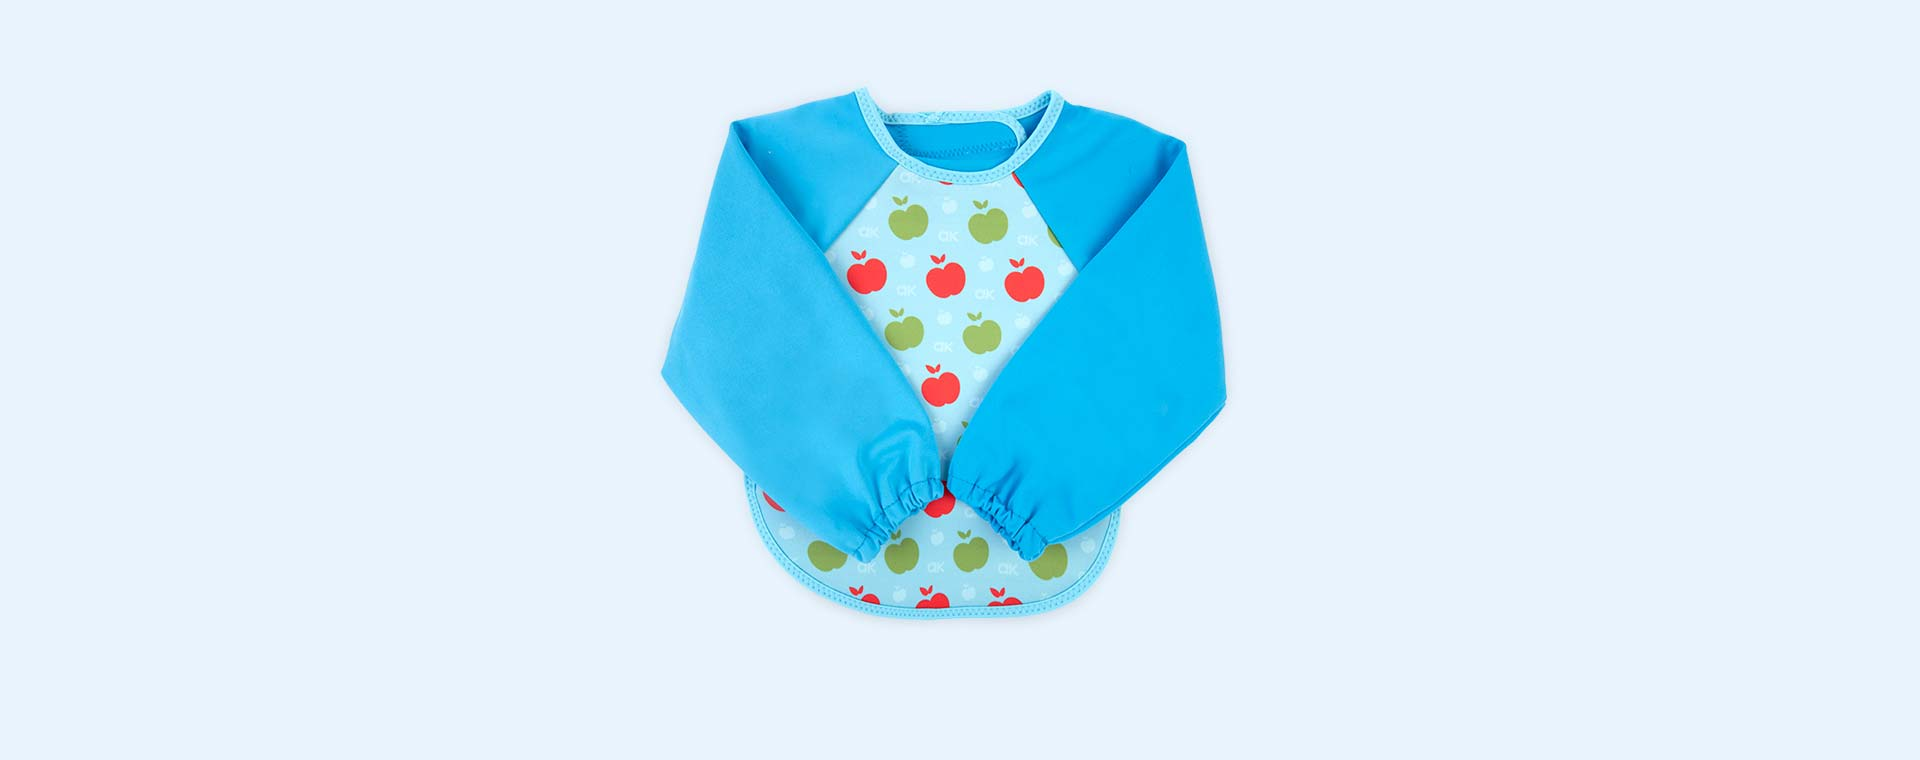 Blue Apples Bibetta Annabel Karmel Ultra Bib with Sleeves